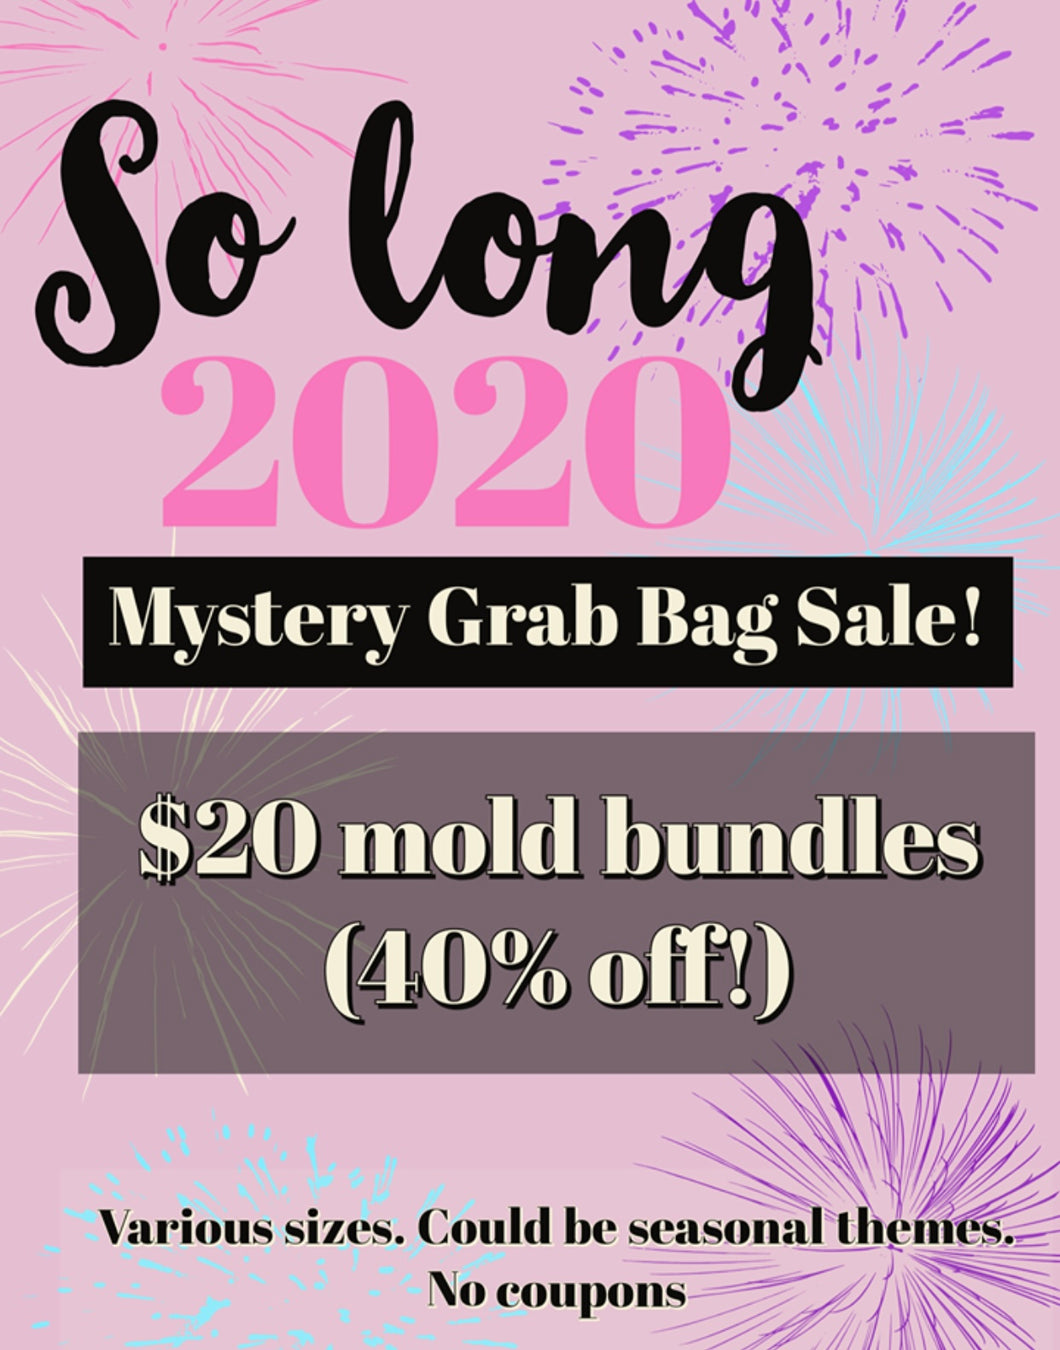 So Long 2020 Mystery Grab Bag $35 molds for $20